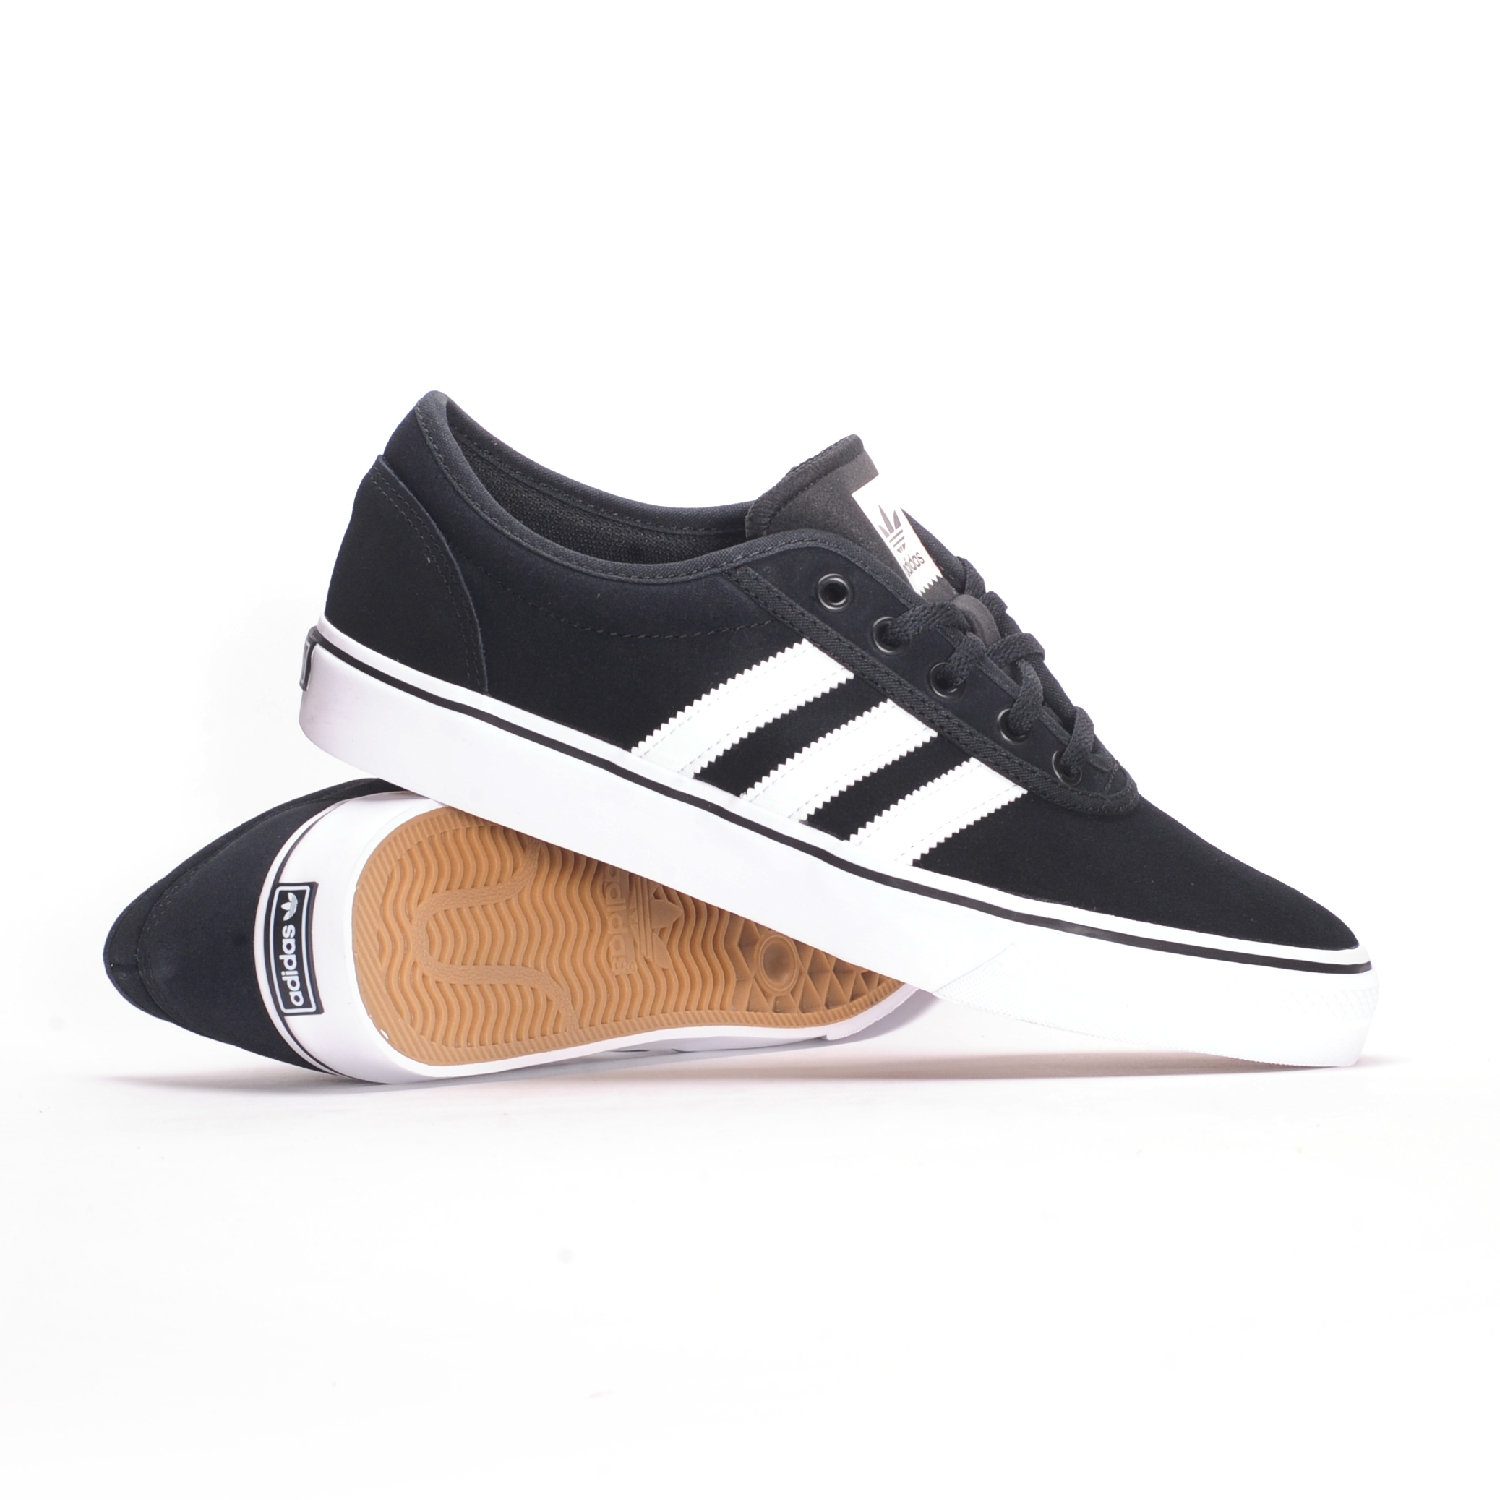 Adidas Adi-Ease (Core Black/White/Core Black) Men's Skate Shoes